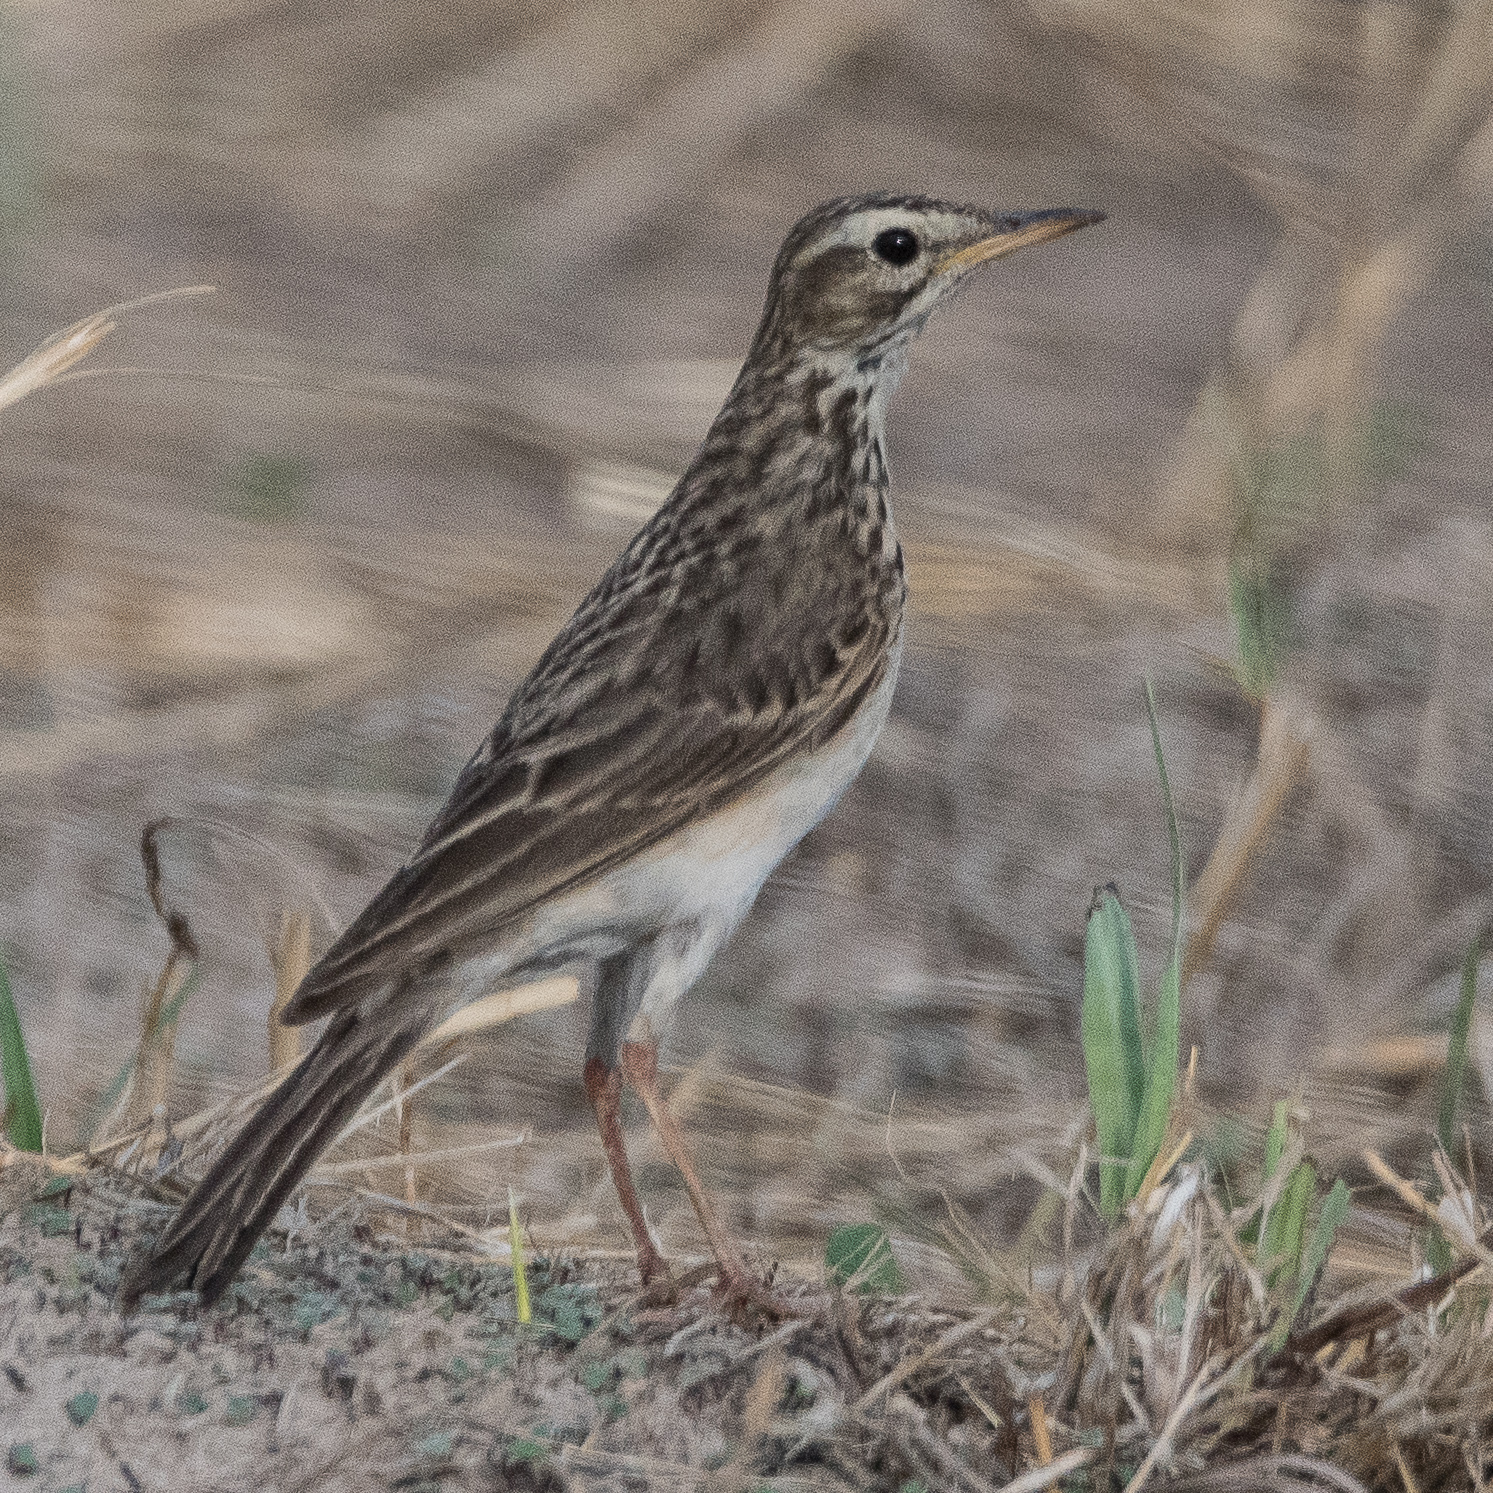 Pipit Africain (African pipit, Anthus cinnamomeus), Chobe National Park, Botswana.